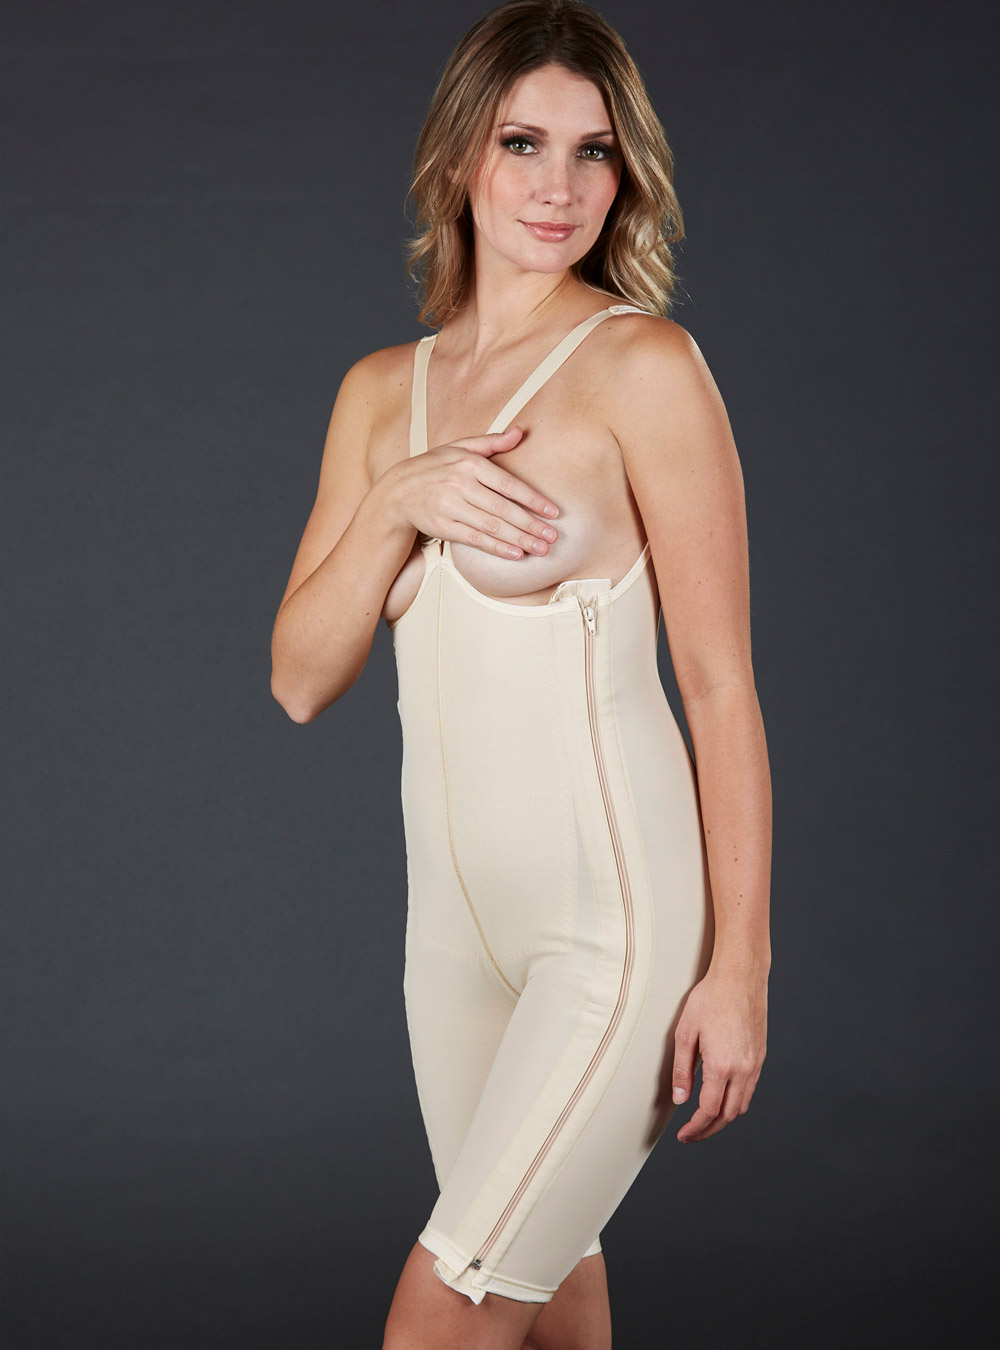 SC-310 High Back Above the Knee Girdle